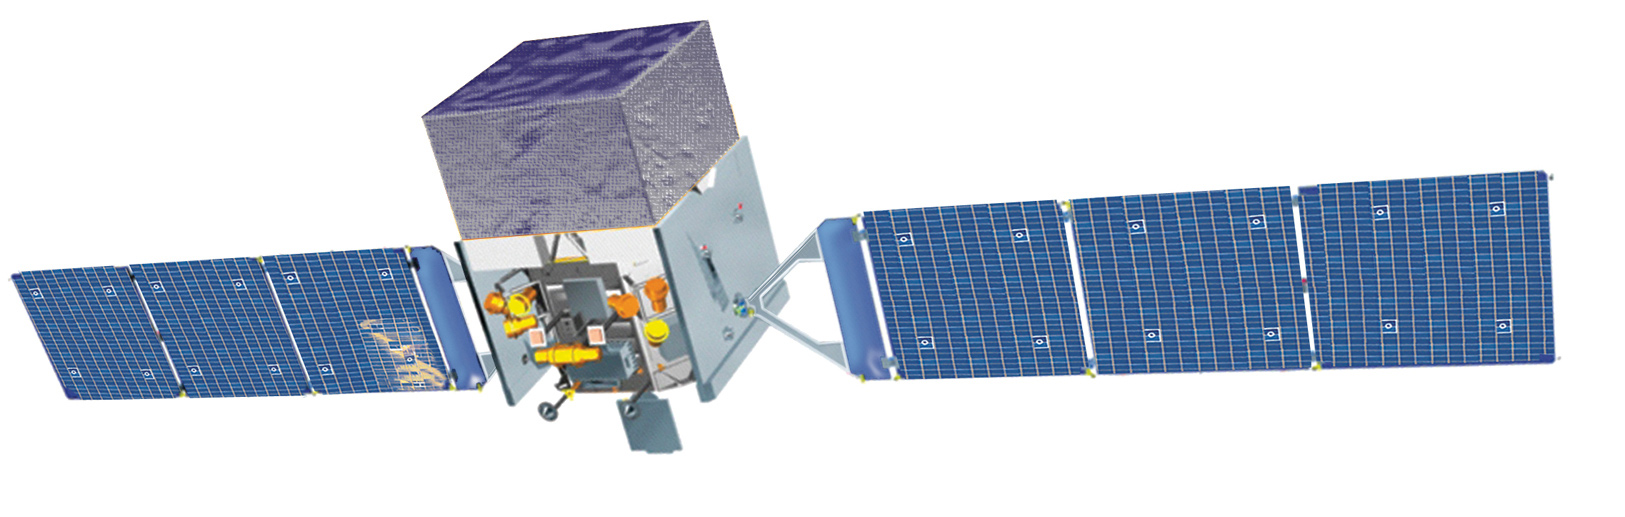 Fermi satellite image, a box with wings.